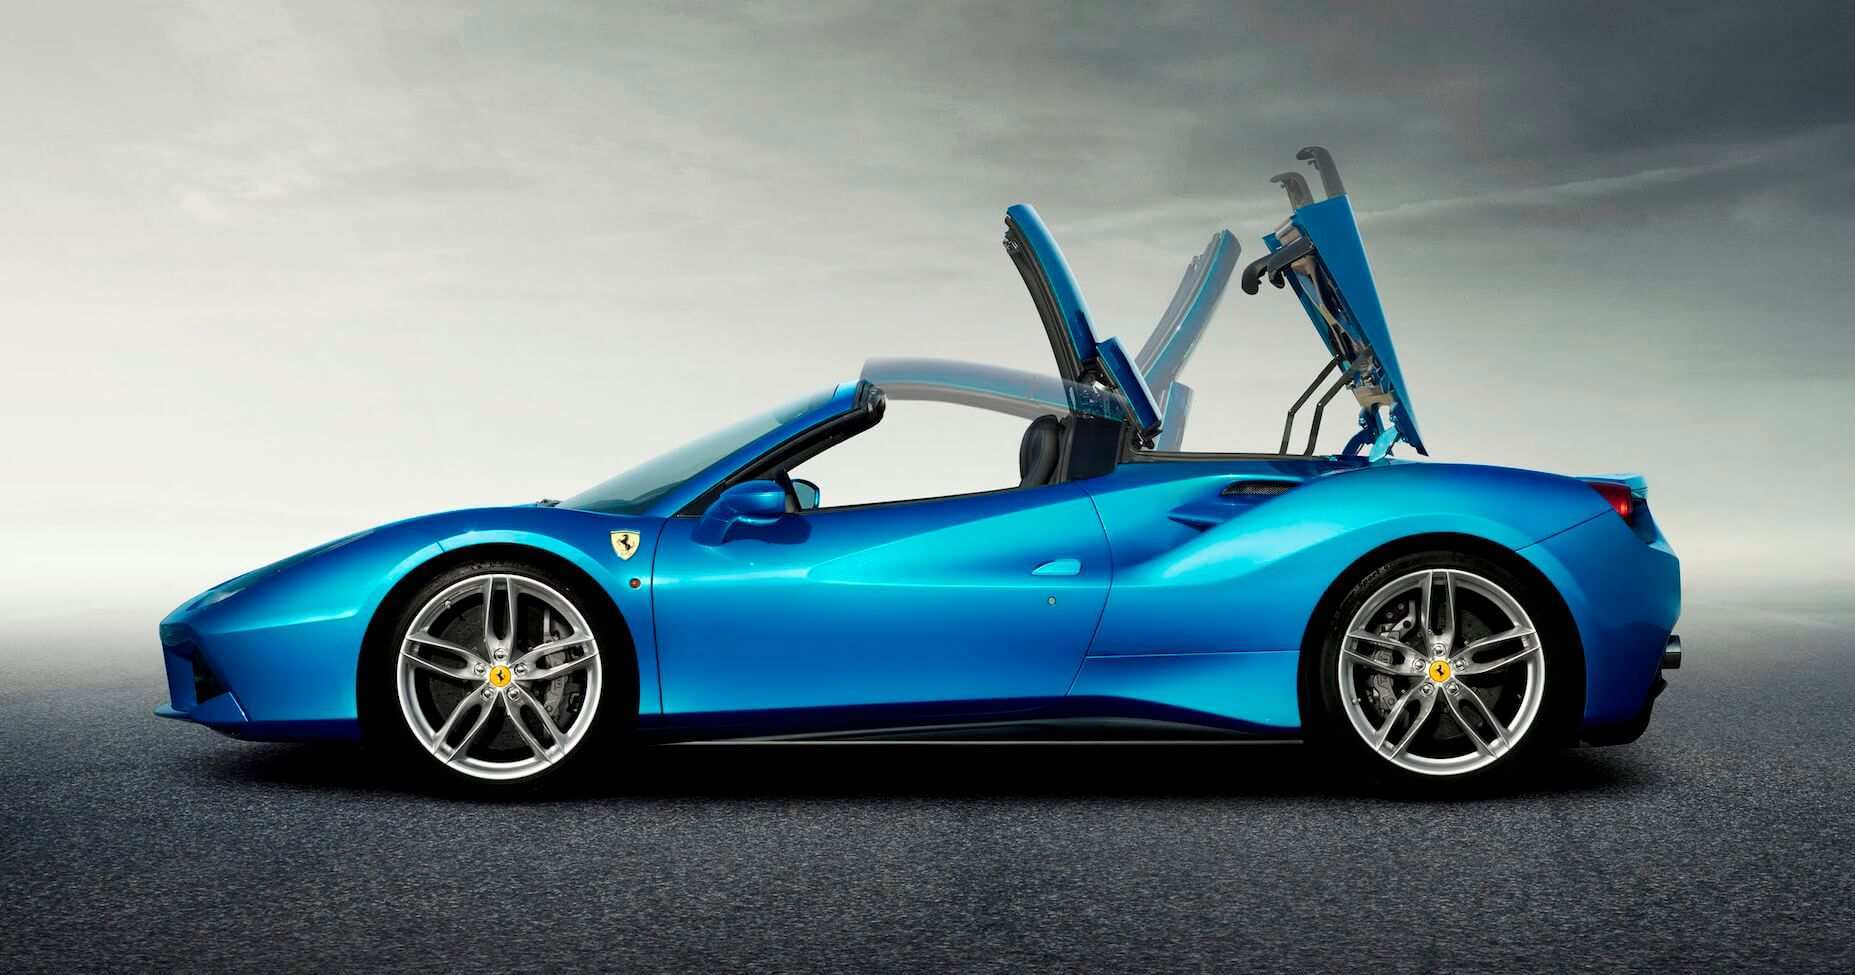 70 Concept of 2020 Ferrari 488 Spider Exterior Model with 2020 Ferrari 488 Spider Exterior